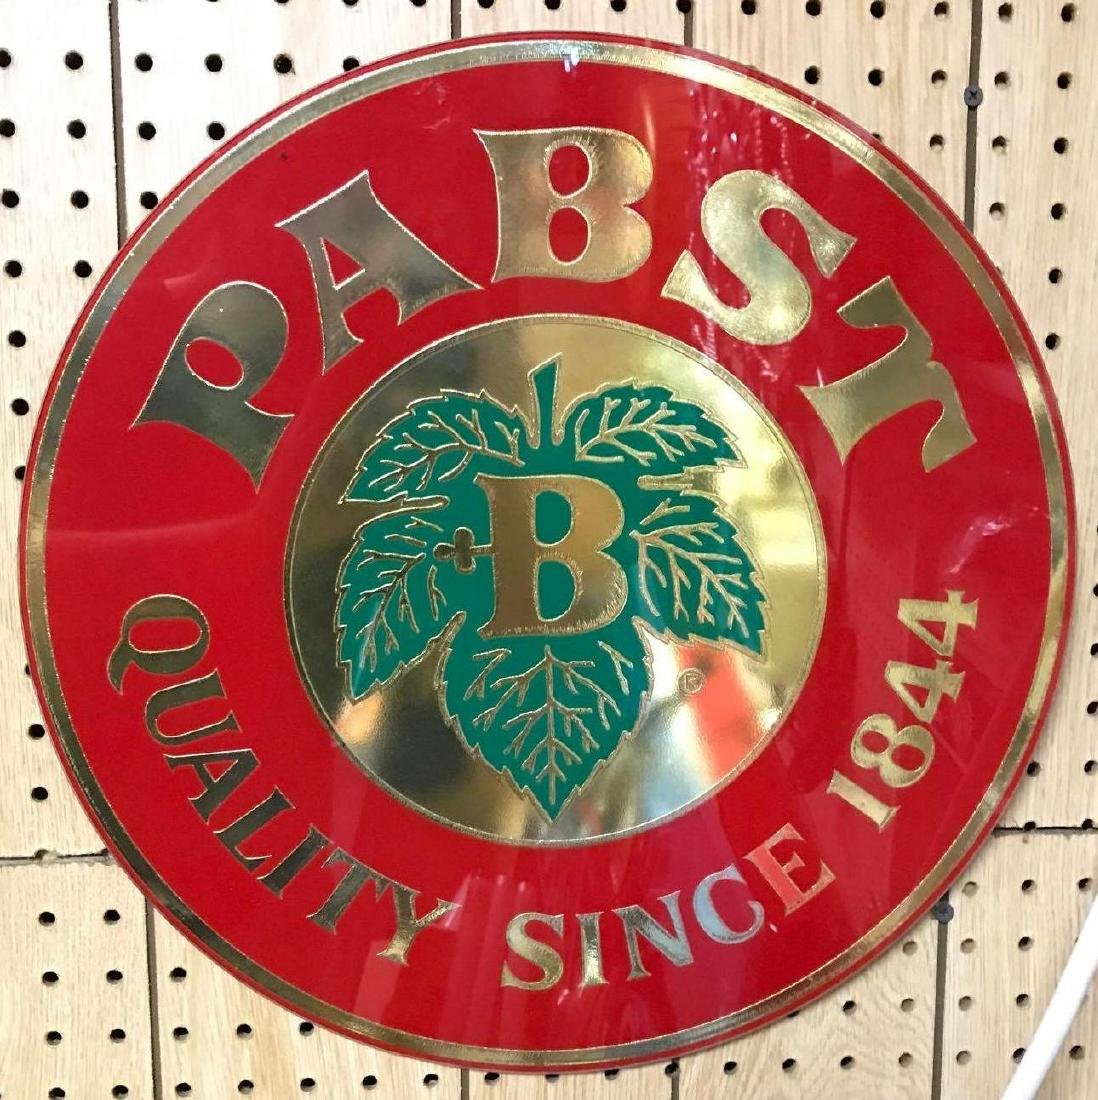 Vintage Pabst Reverse painted glass sign